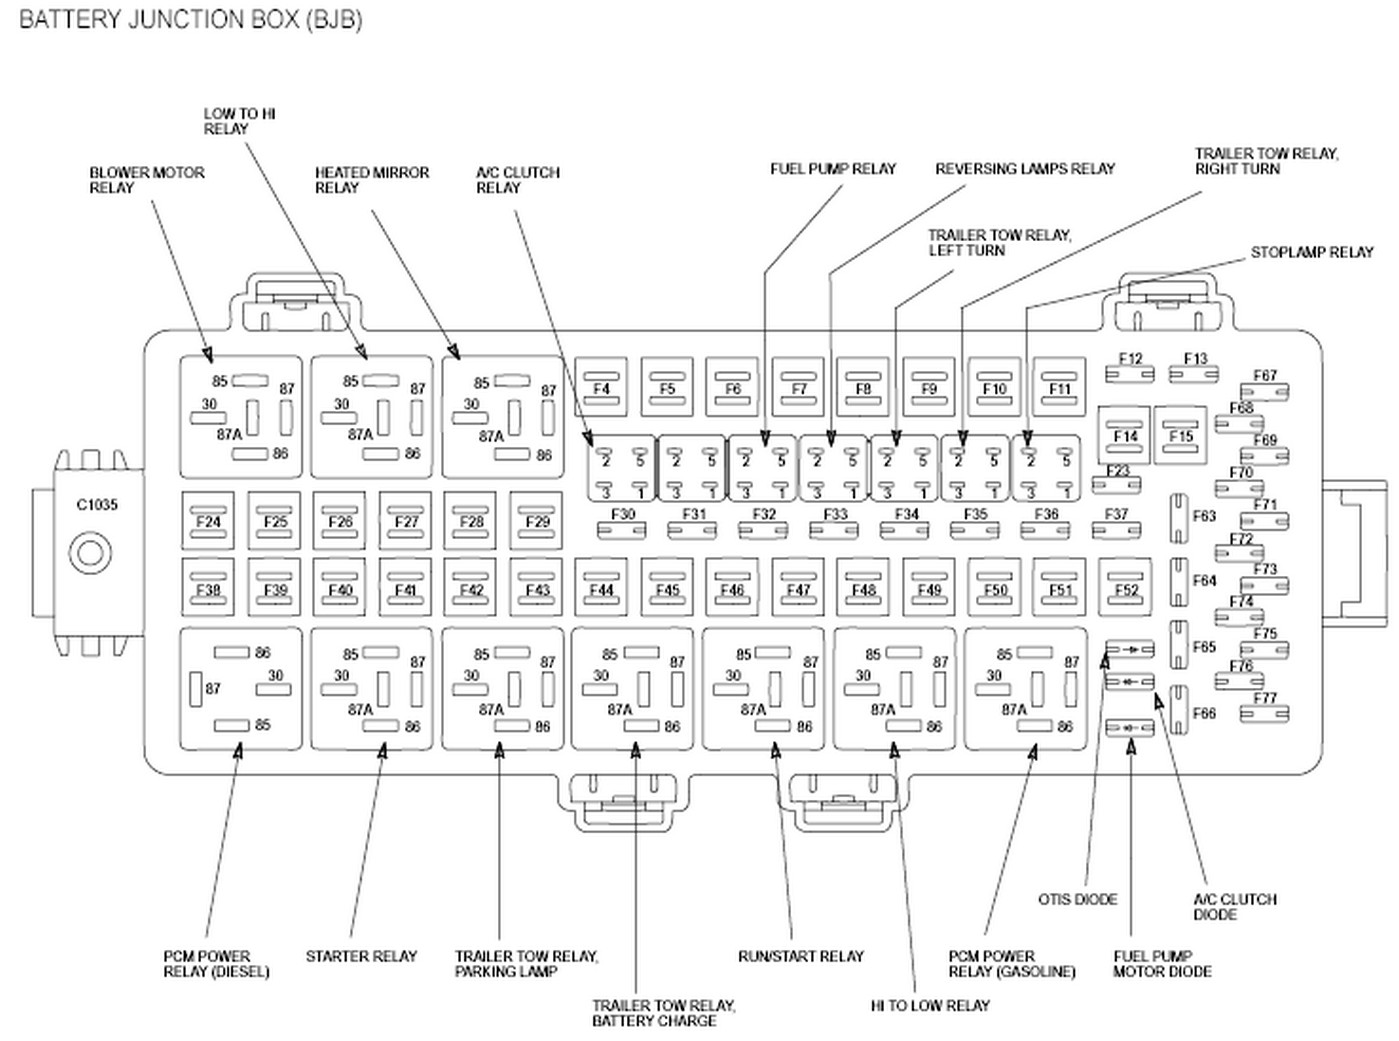 1997 F250 Light Duty Fuse Diagram Wiring Third Level 2003 Ford E150 Washer Schematic 2008 F 250 Box Panel